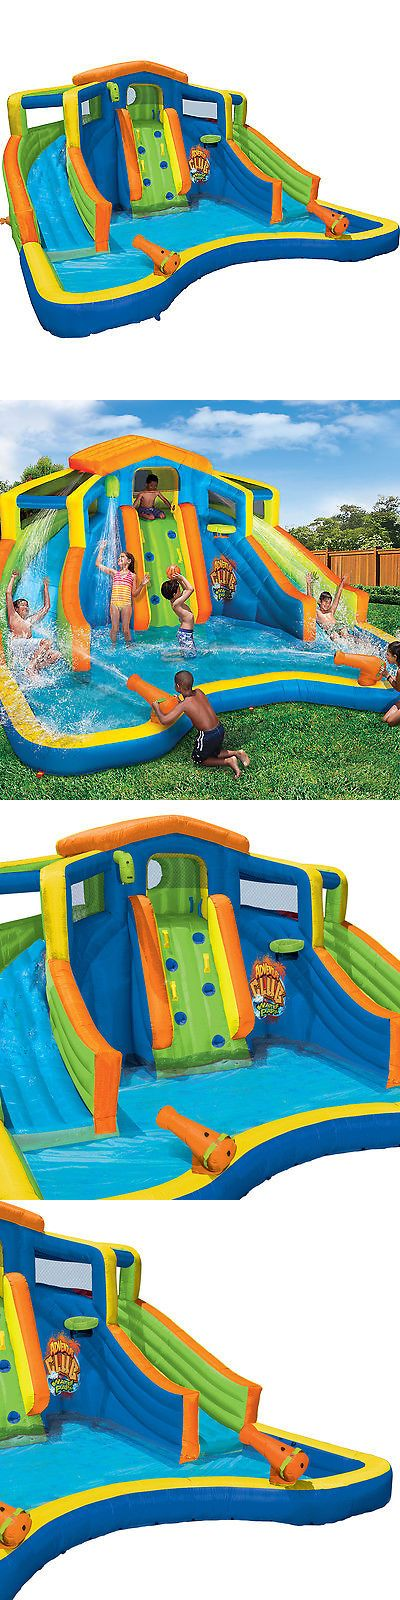 Water Slides 145992: Banzai Inflatable Adventure Club Dual Slide And Pool Backyard Water Park -> BUY IT NOW ONLY: $679.99 on eBay!